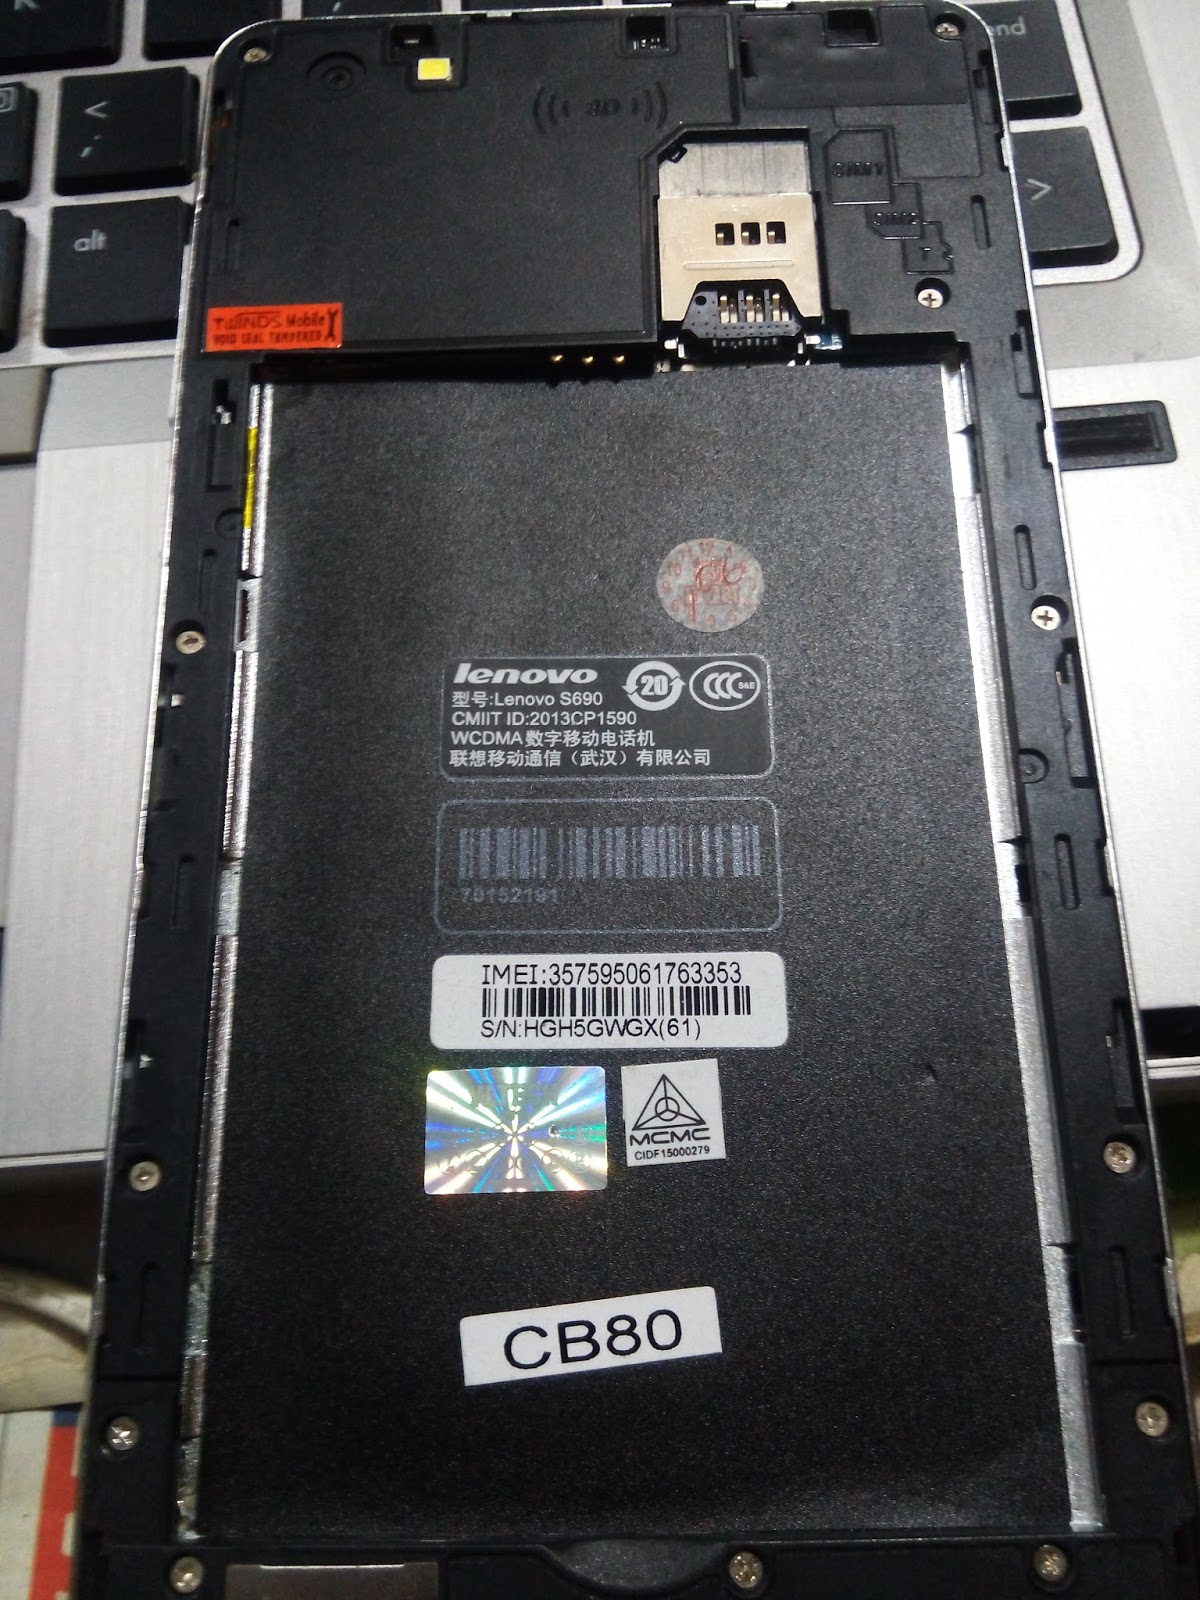 Jobayar Telecom Lenovo A6020a46 Flash File Dead Boot Repair